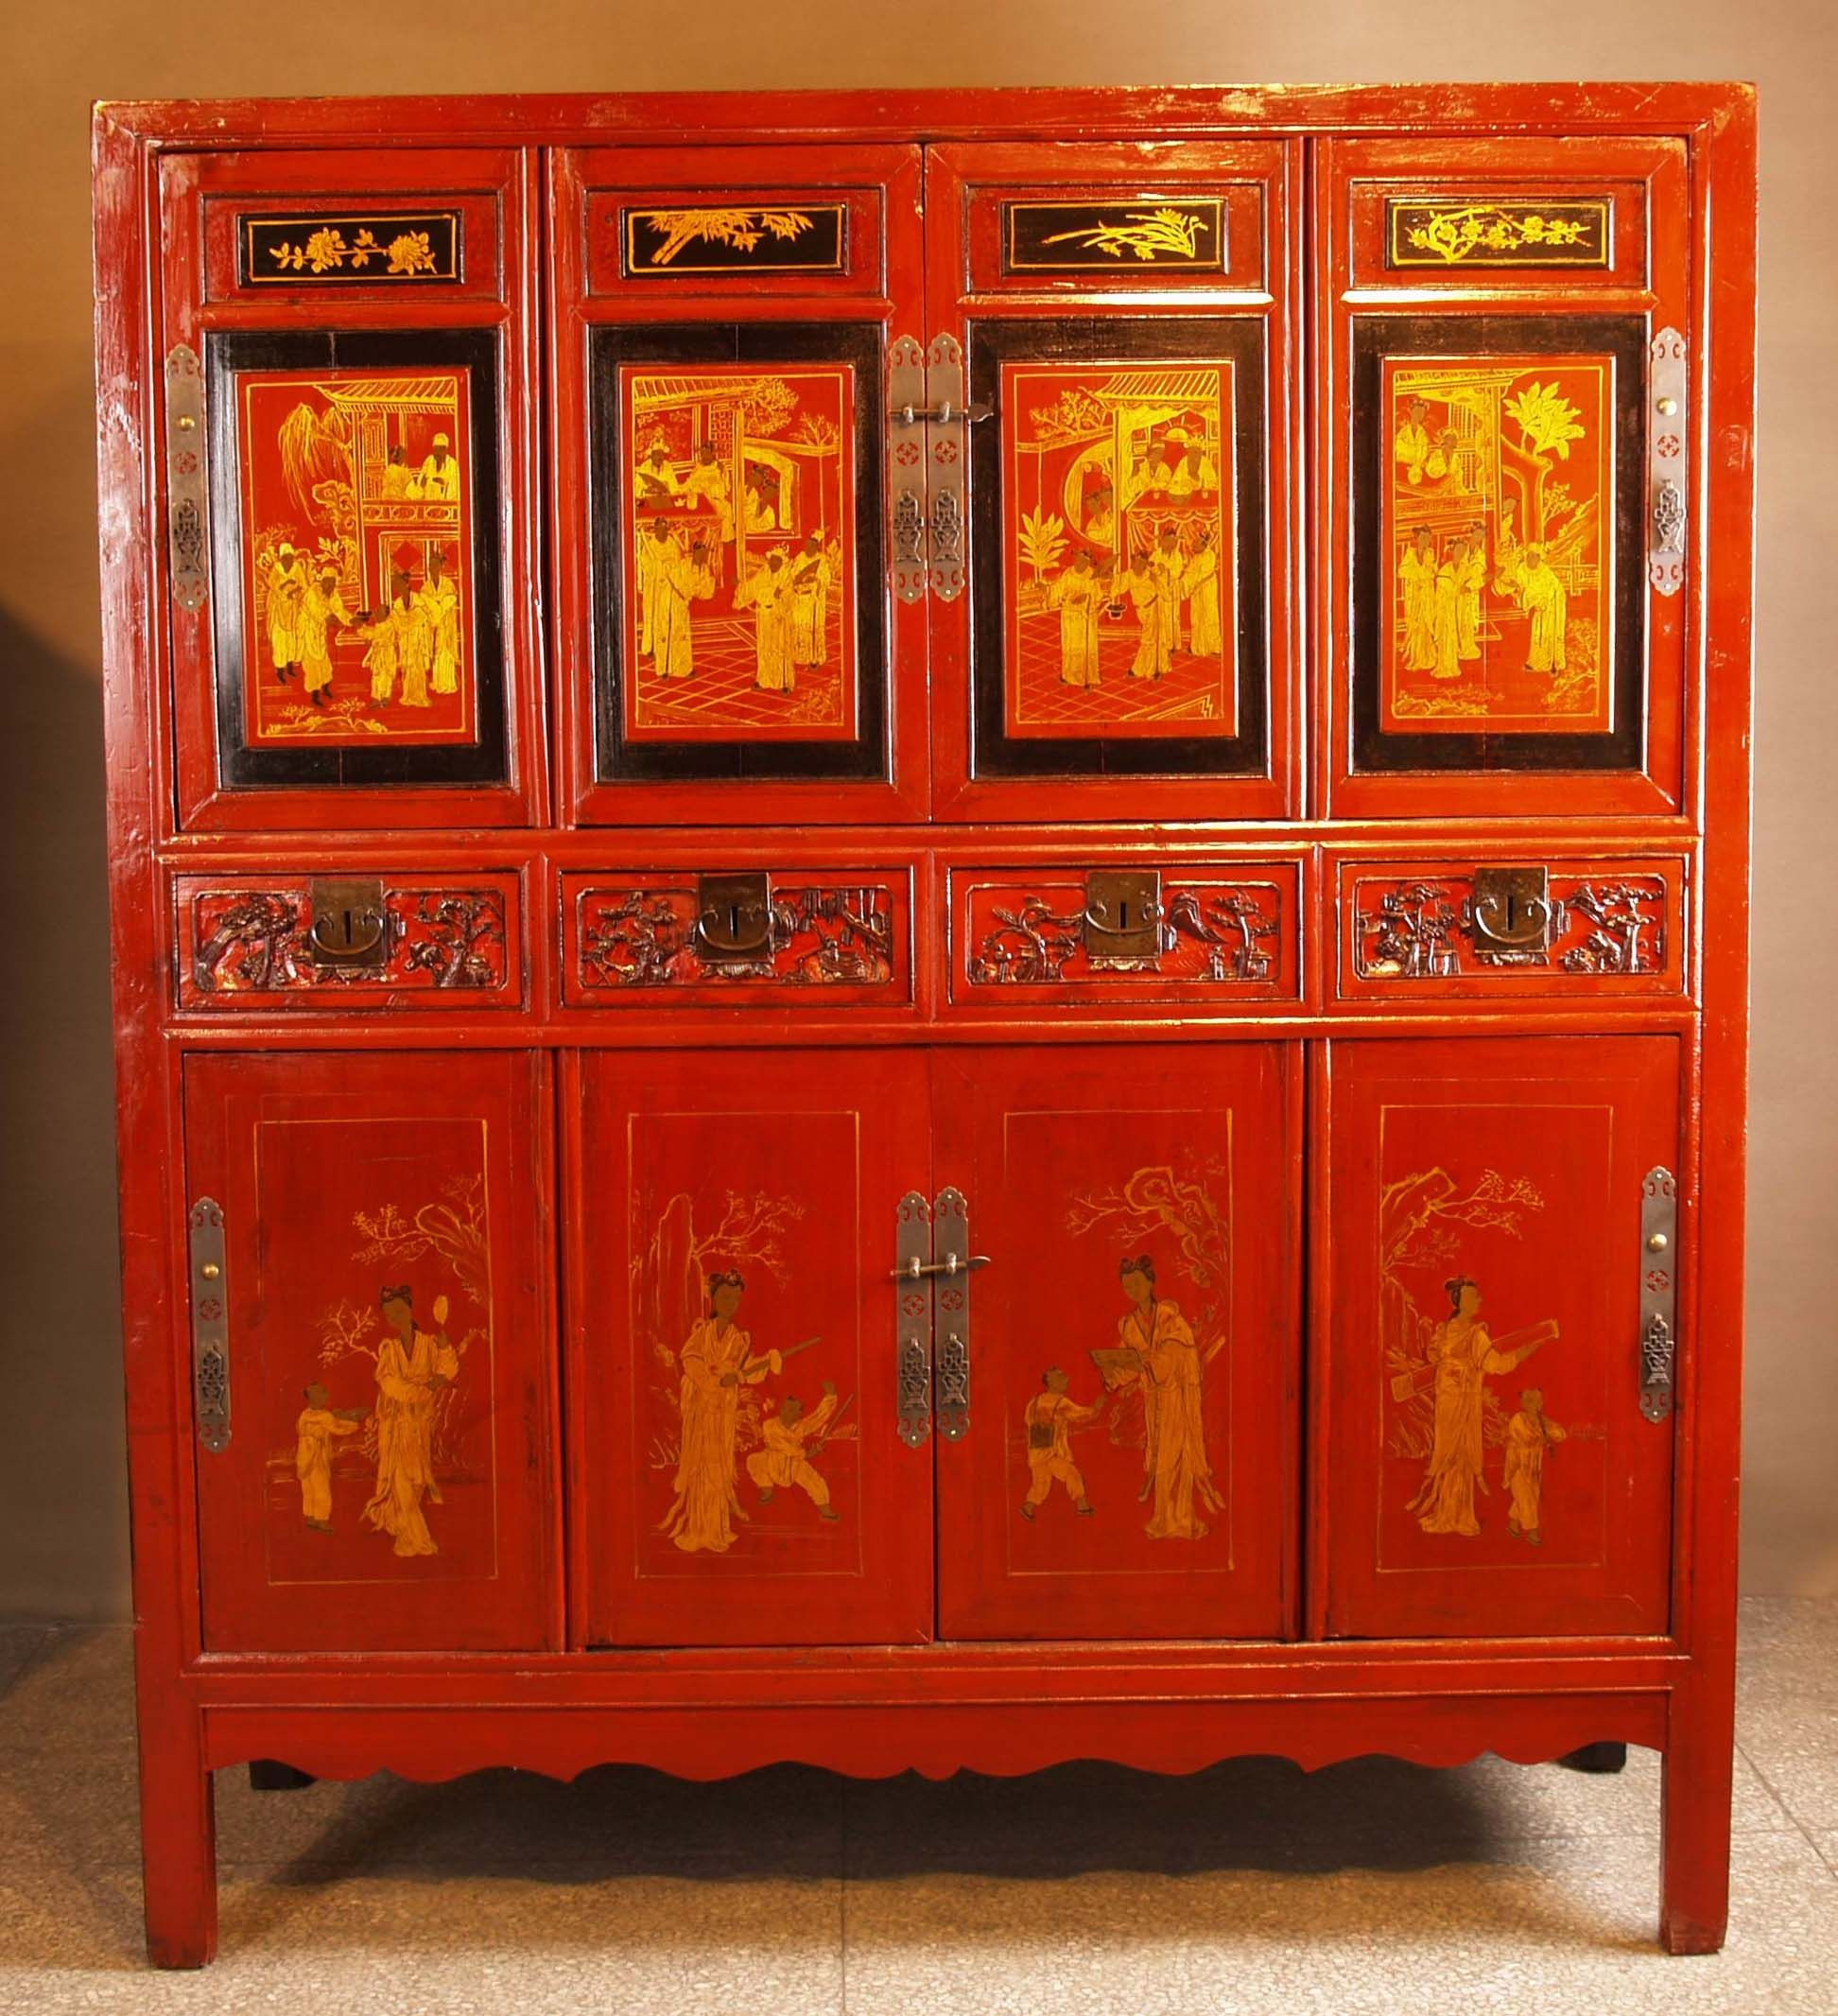 Asian Antique Furniture | AntiqueFurniture.com